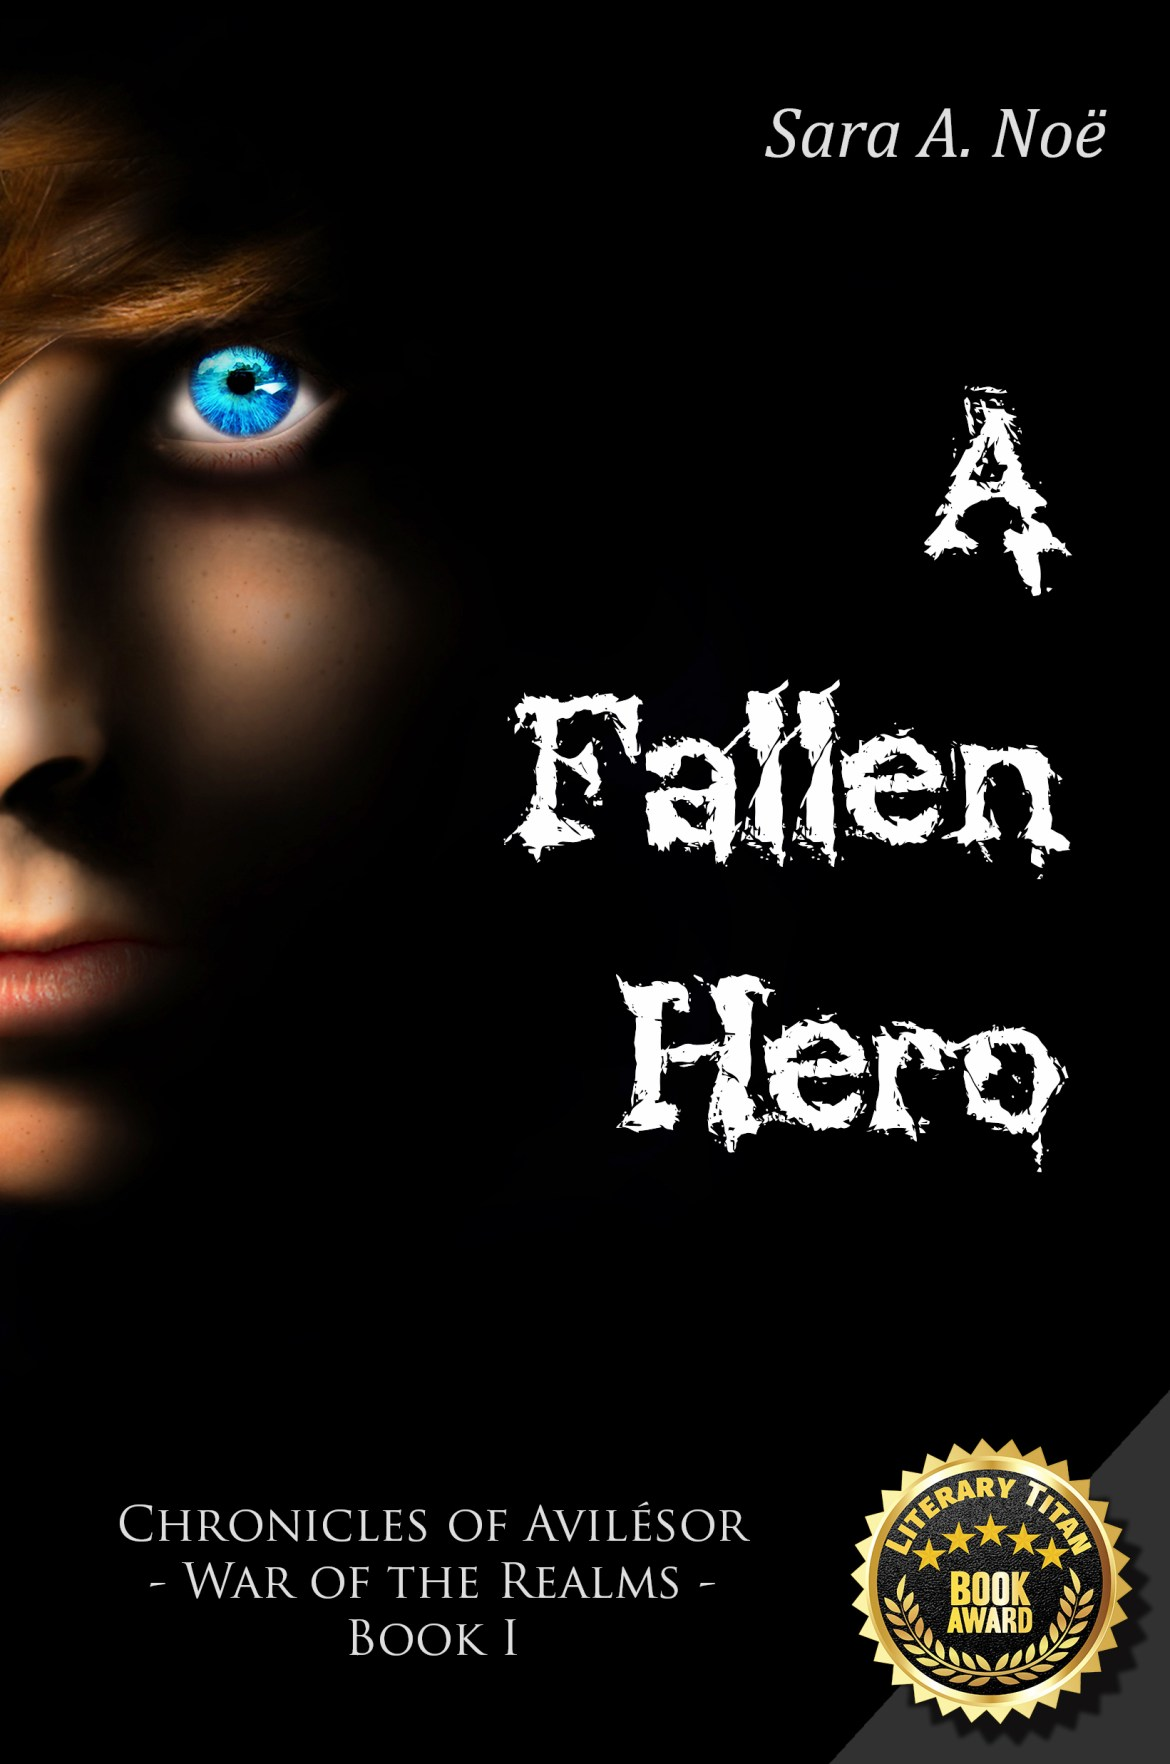 A Fallen Hero by Sara A. Noe Chronicles of Avilesor War of the Realms Book I, Literary Titan Gold Book Award cover